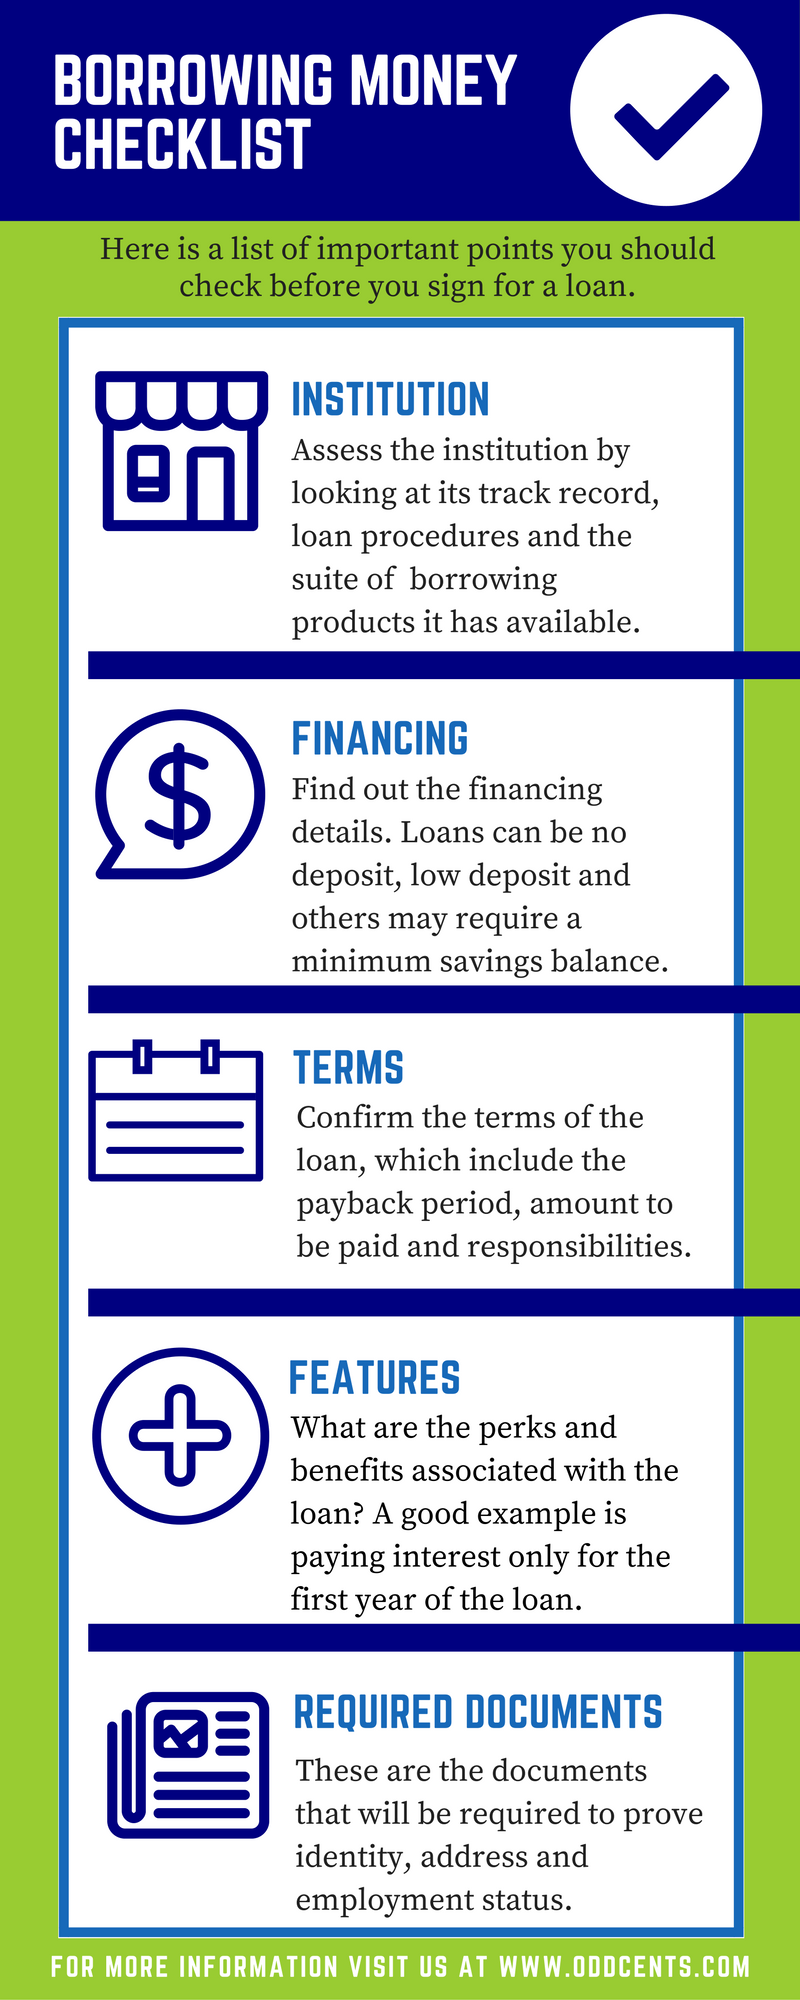 borrowing money checklist